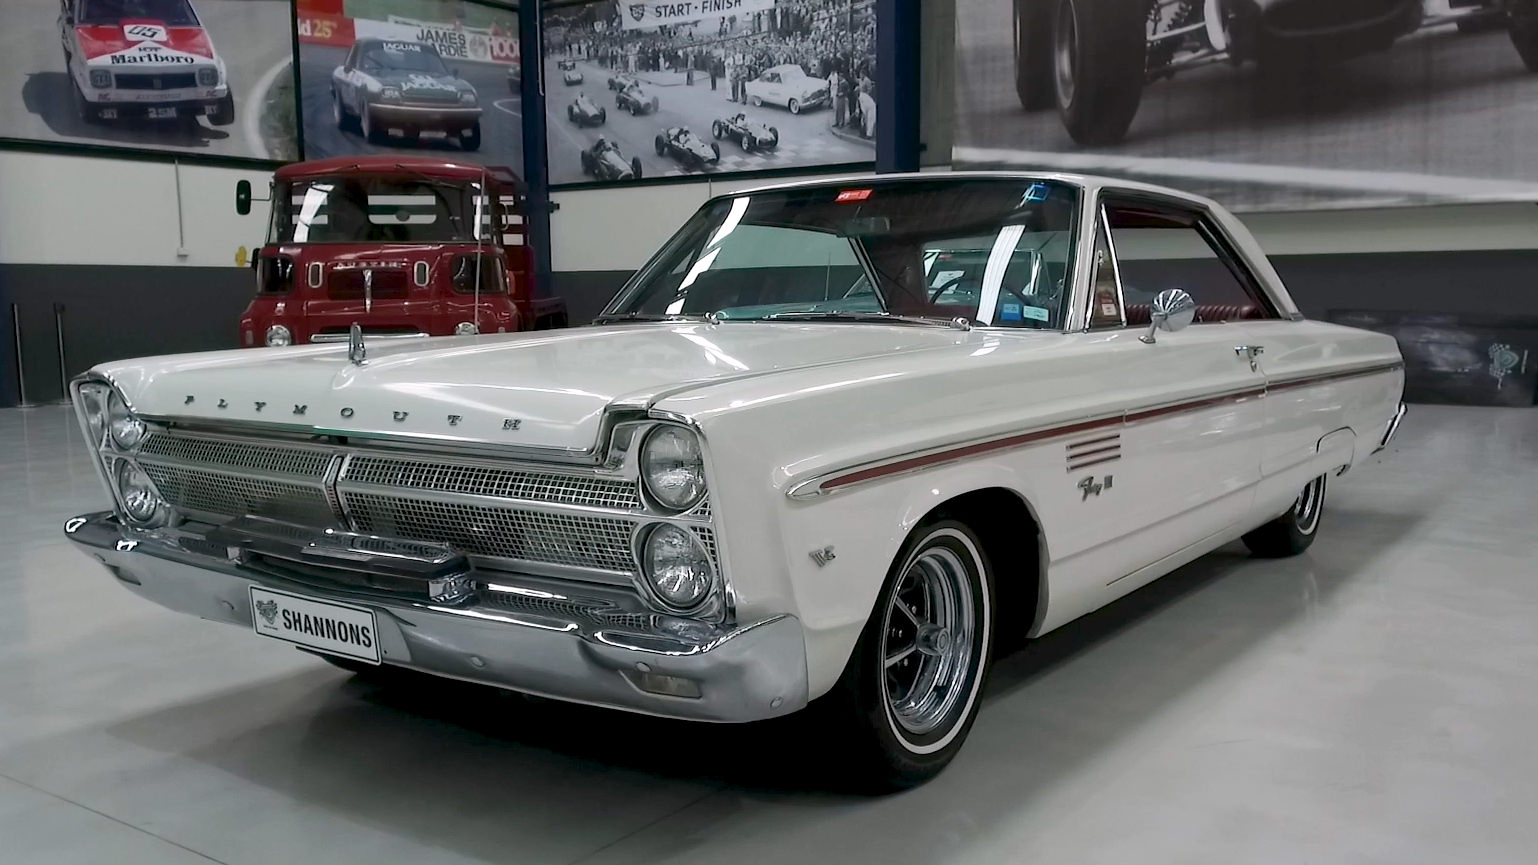 1965 Plymouth Fury 3 Hardtop (LHD) - 2021 Shannons Autumn Timed Online Auction